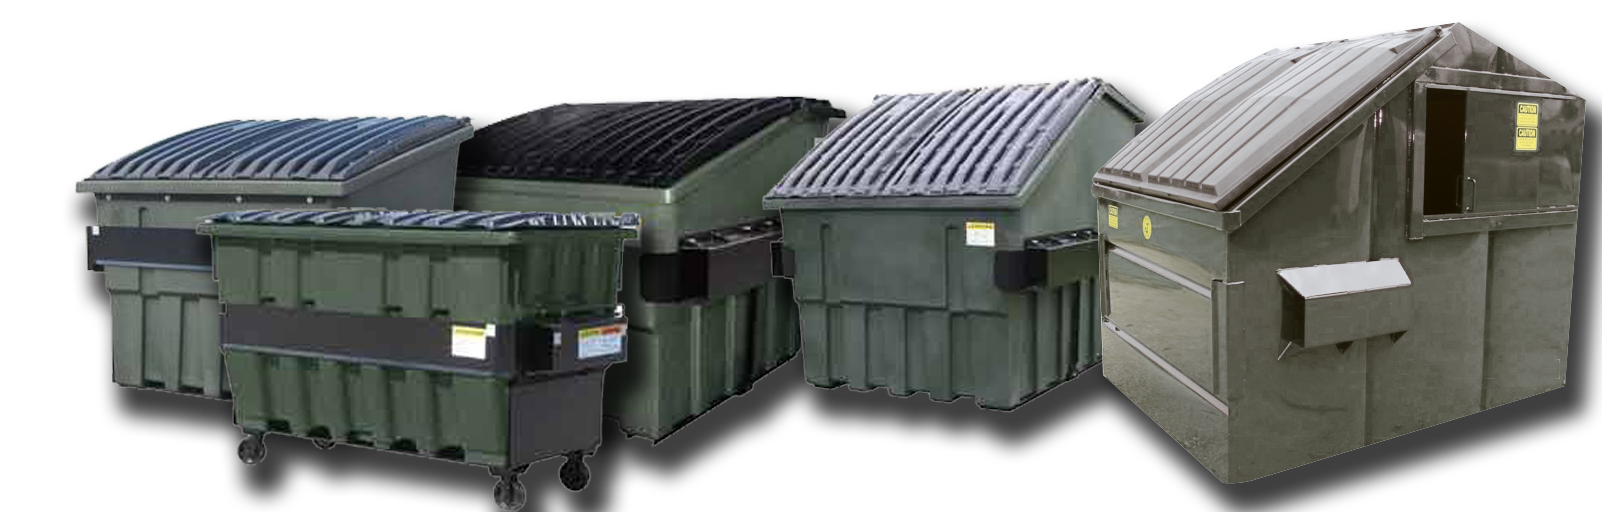 Commercial Dumpster Service in Rockford IL